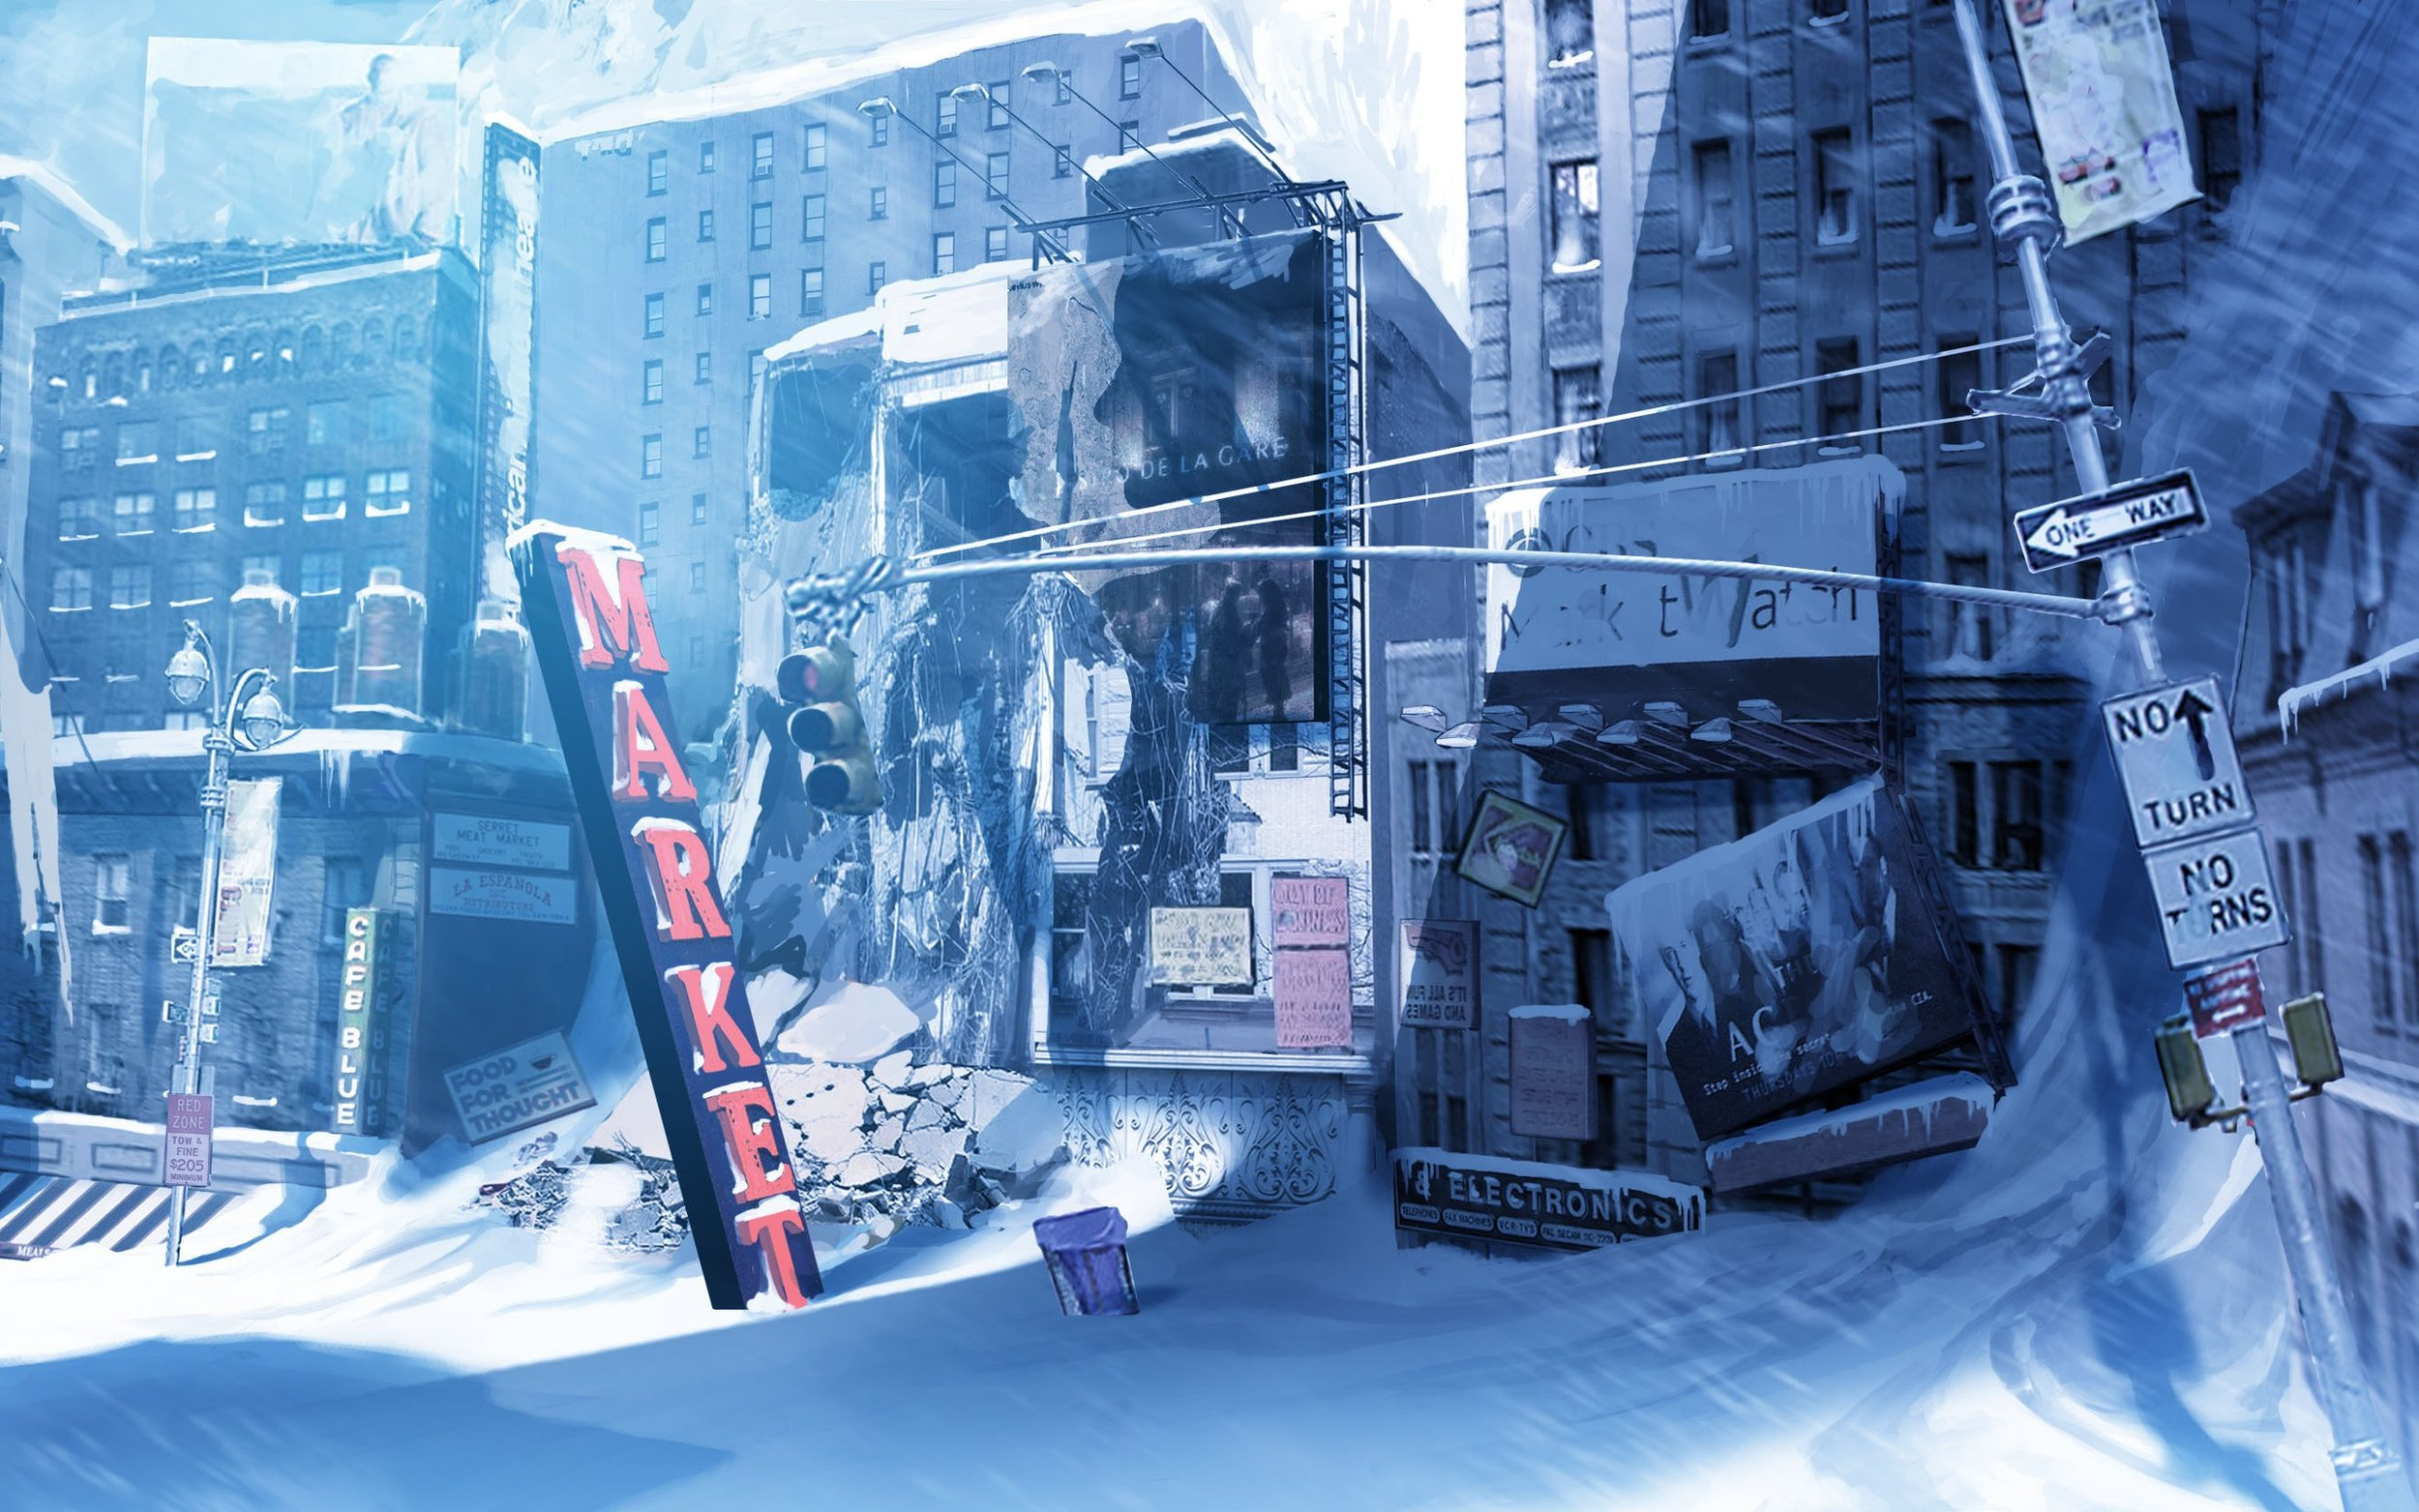 Winter_snow_cityscapes_post_apocalyptic_signs_buildings_traffic_lights_power_lines_2560x1600.jpg